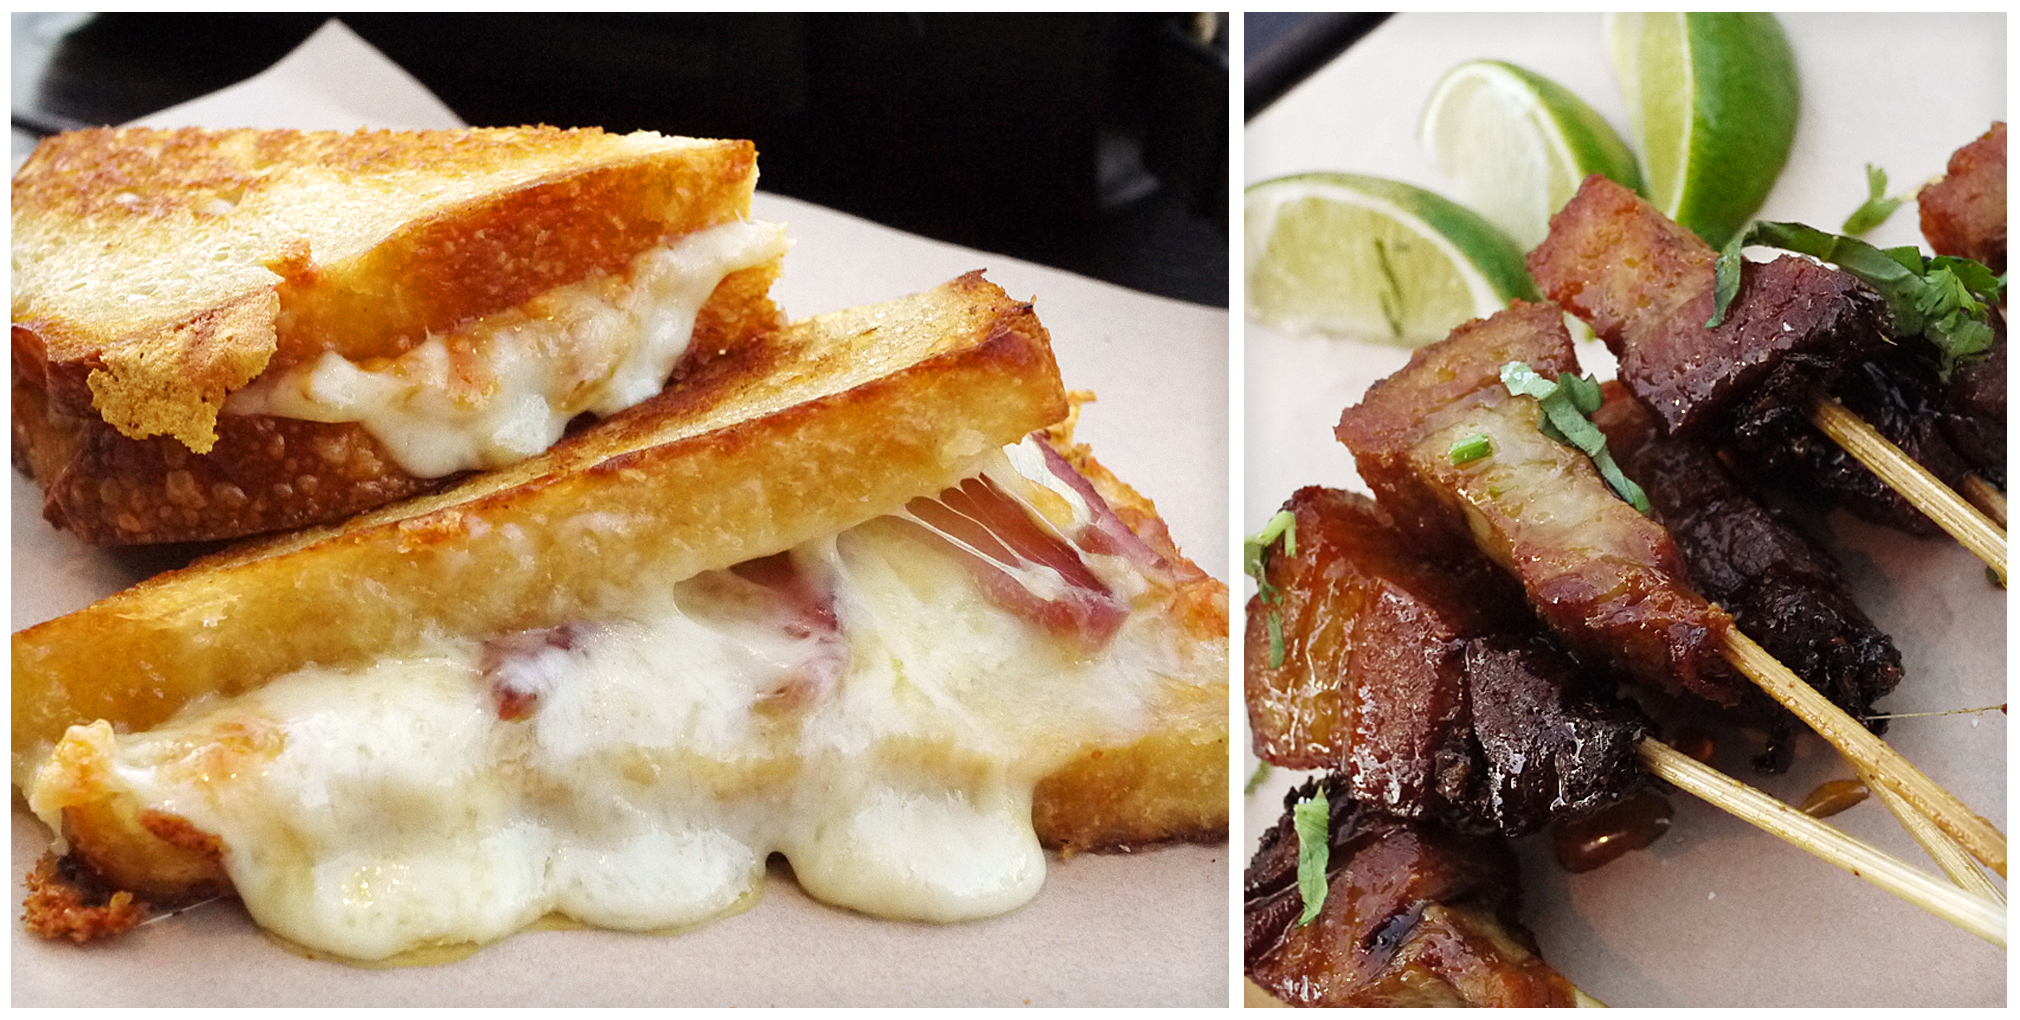 Grilled Cheese Sandwich and Pork Belly Skewers